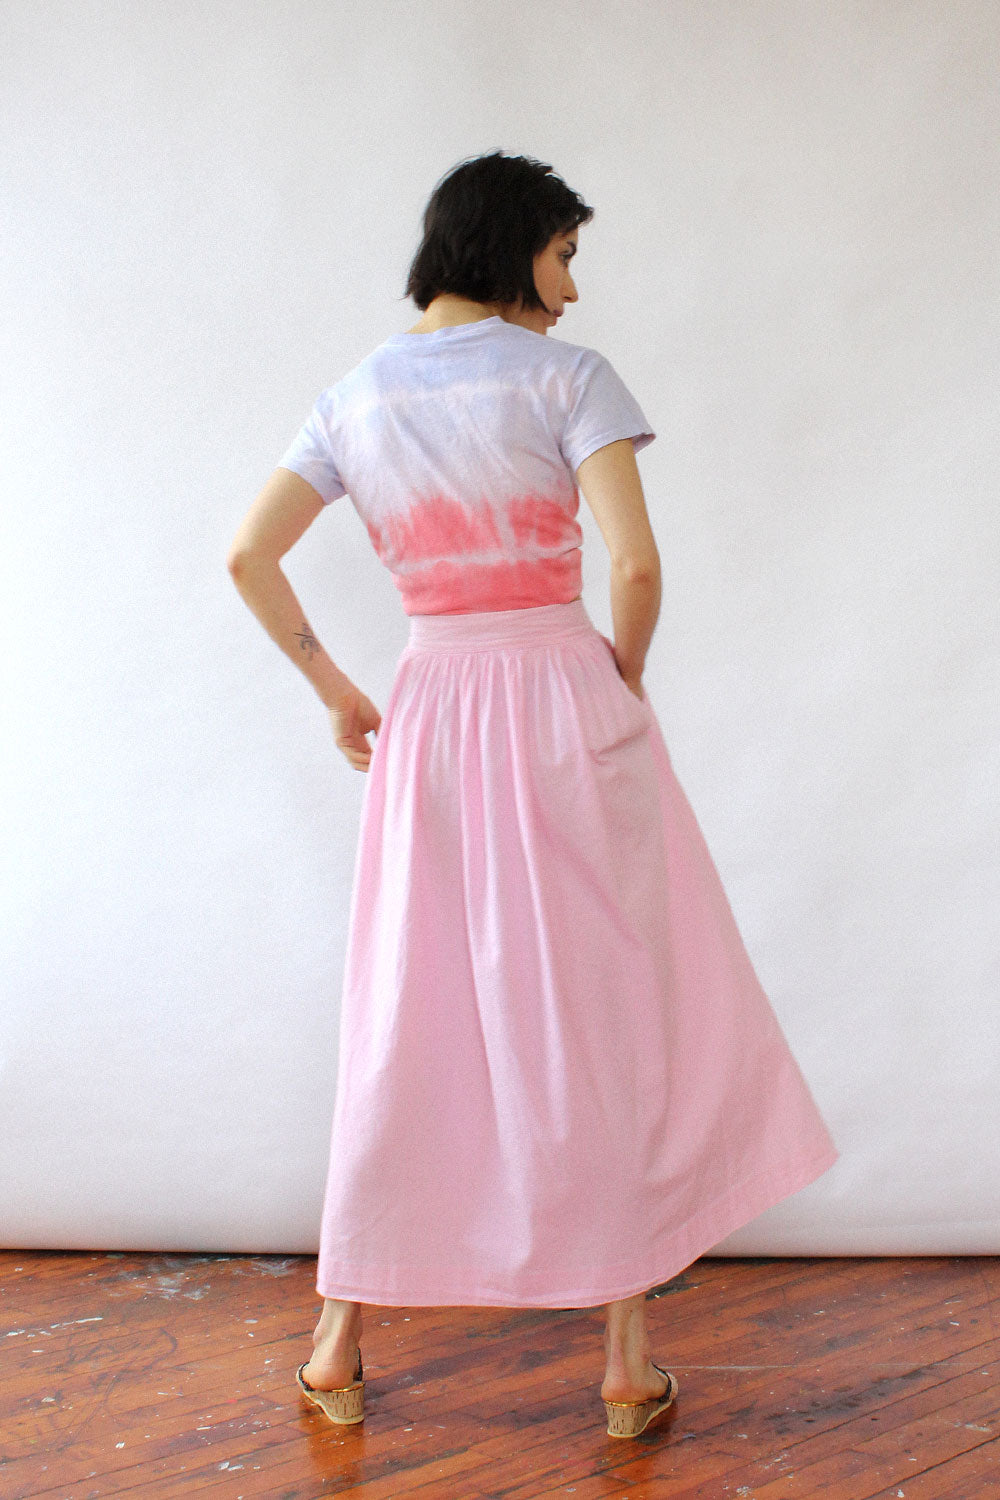 Ralph Lauren Rose Cotton Skirt XS